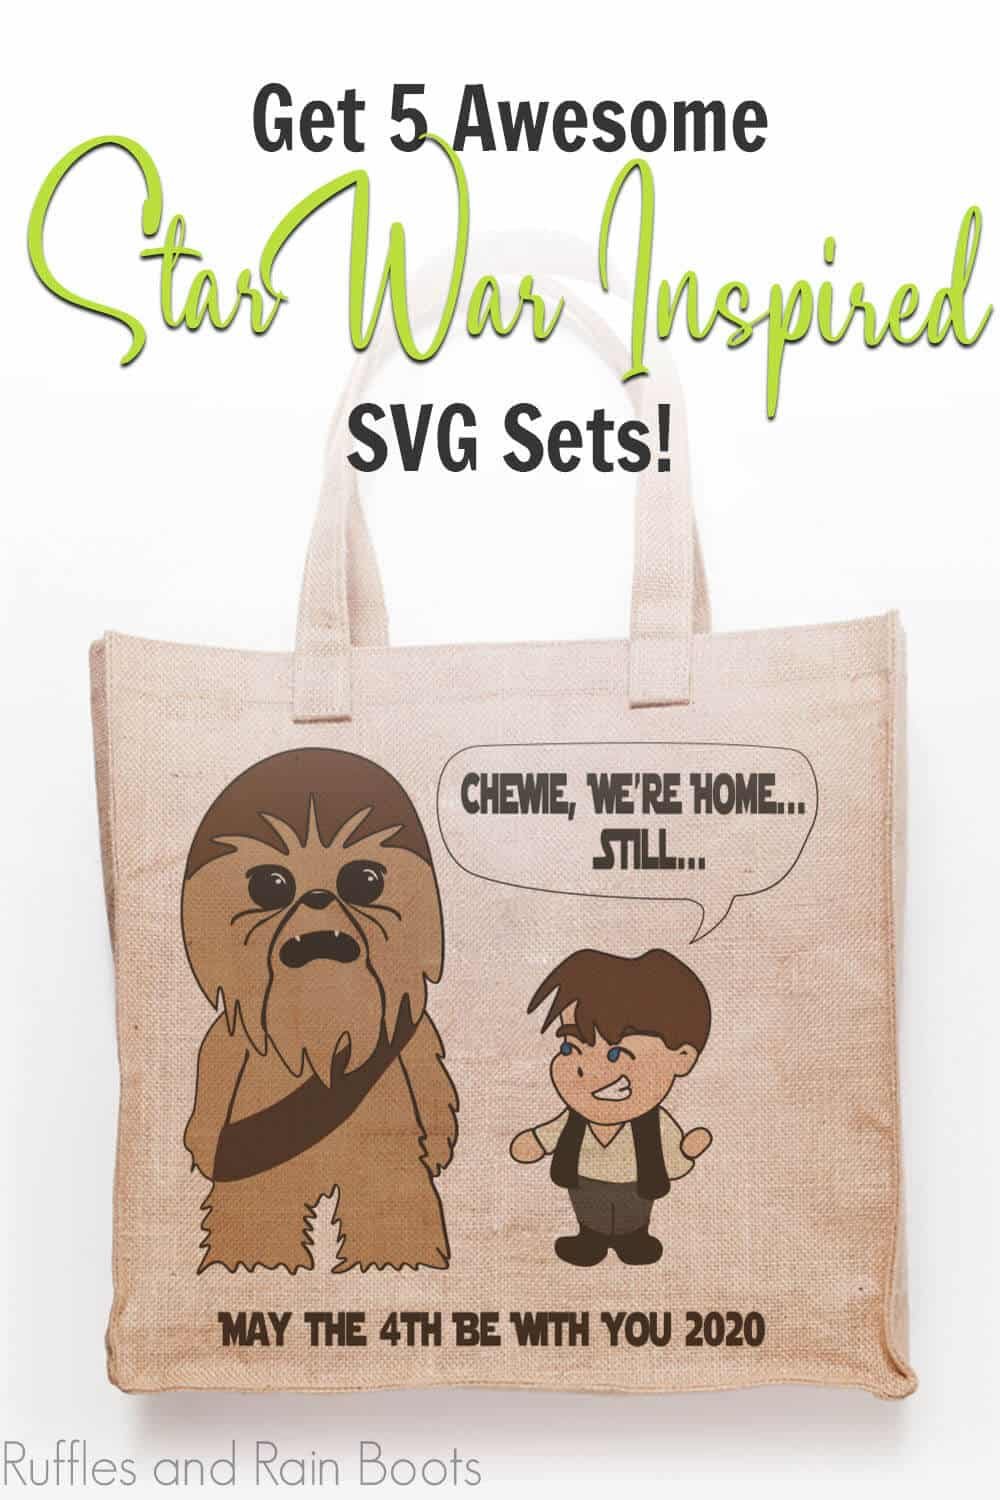 han and chewie svg set on a canvas bag with text which reads get 5 awesome star wars inspired svg sets!